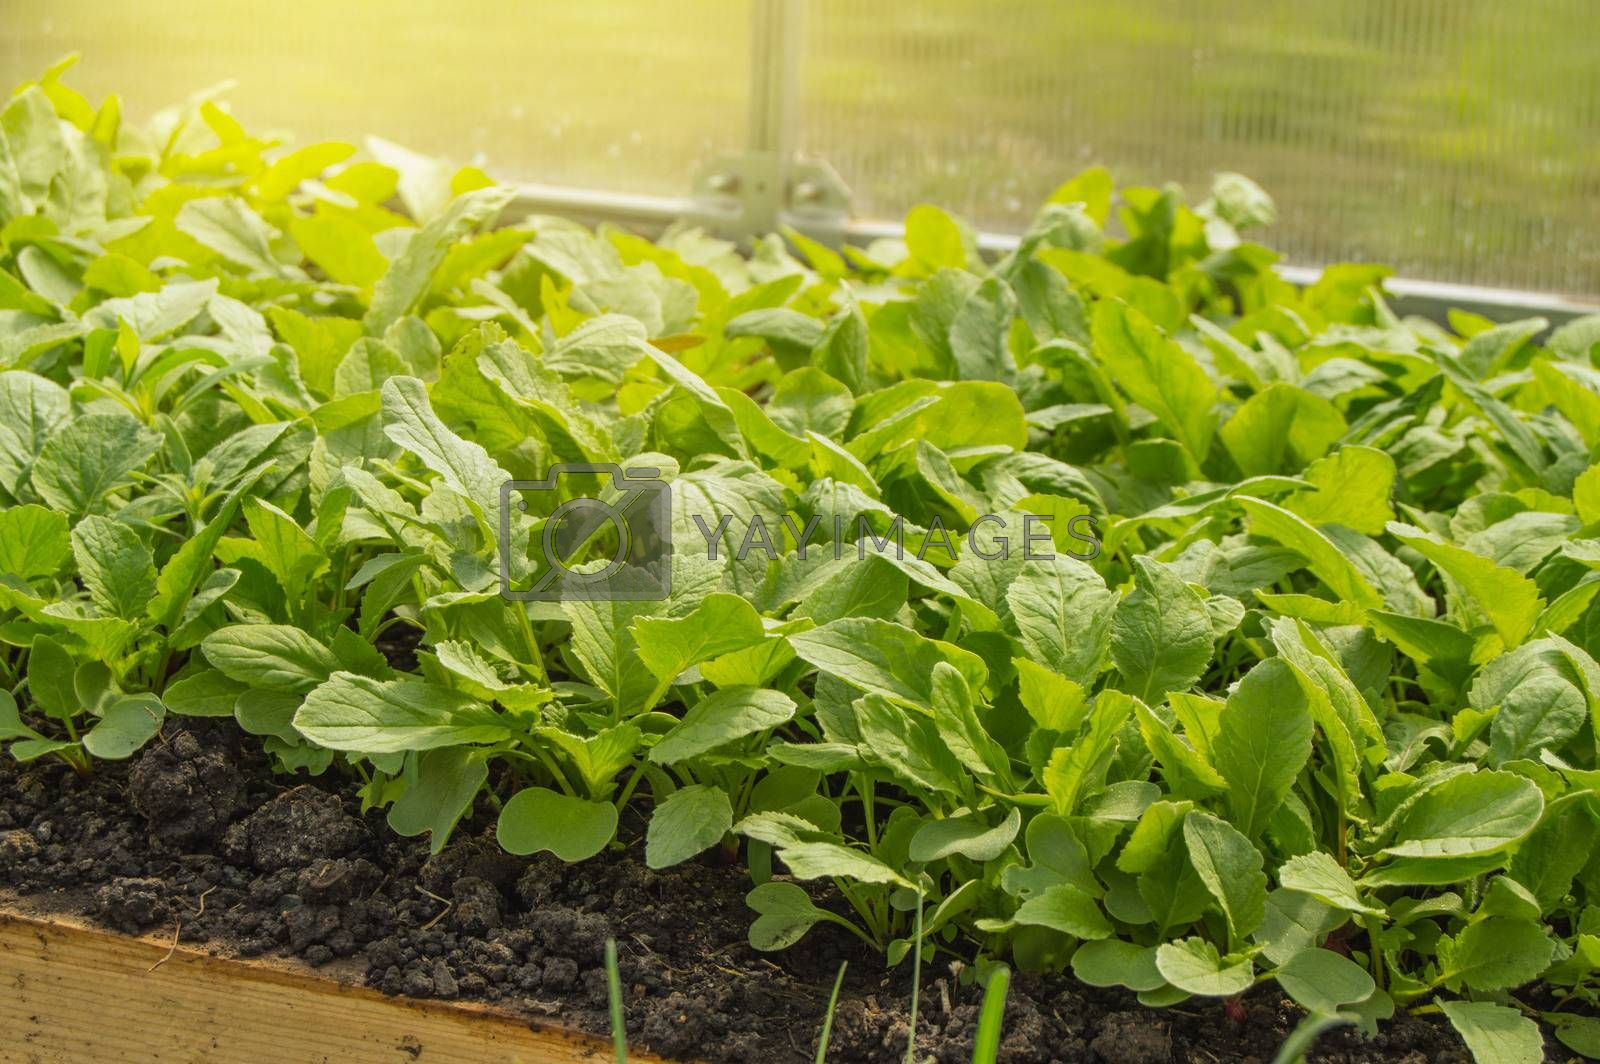 Young radish plants in the greenhouse, the concept of growing organic vegetables indoors all year round by Claire Lucia